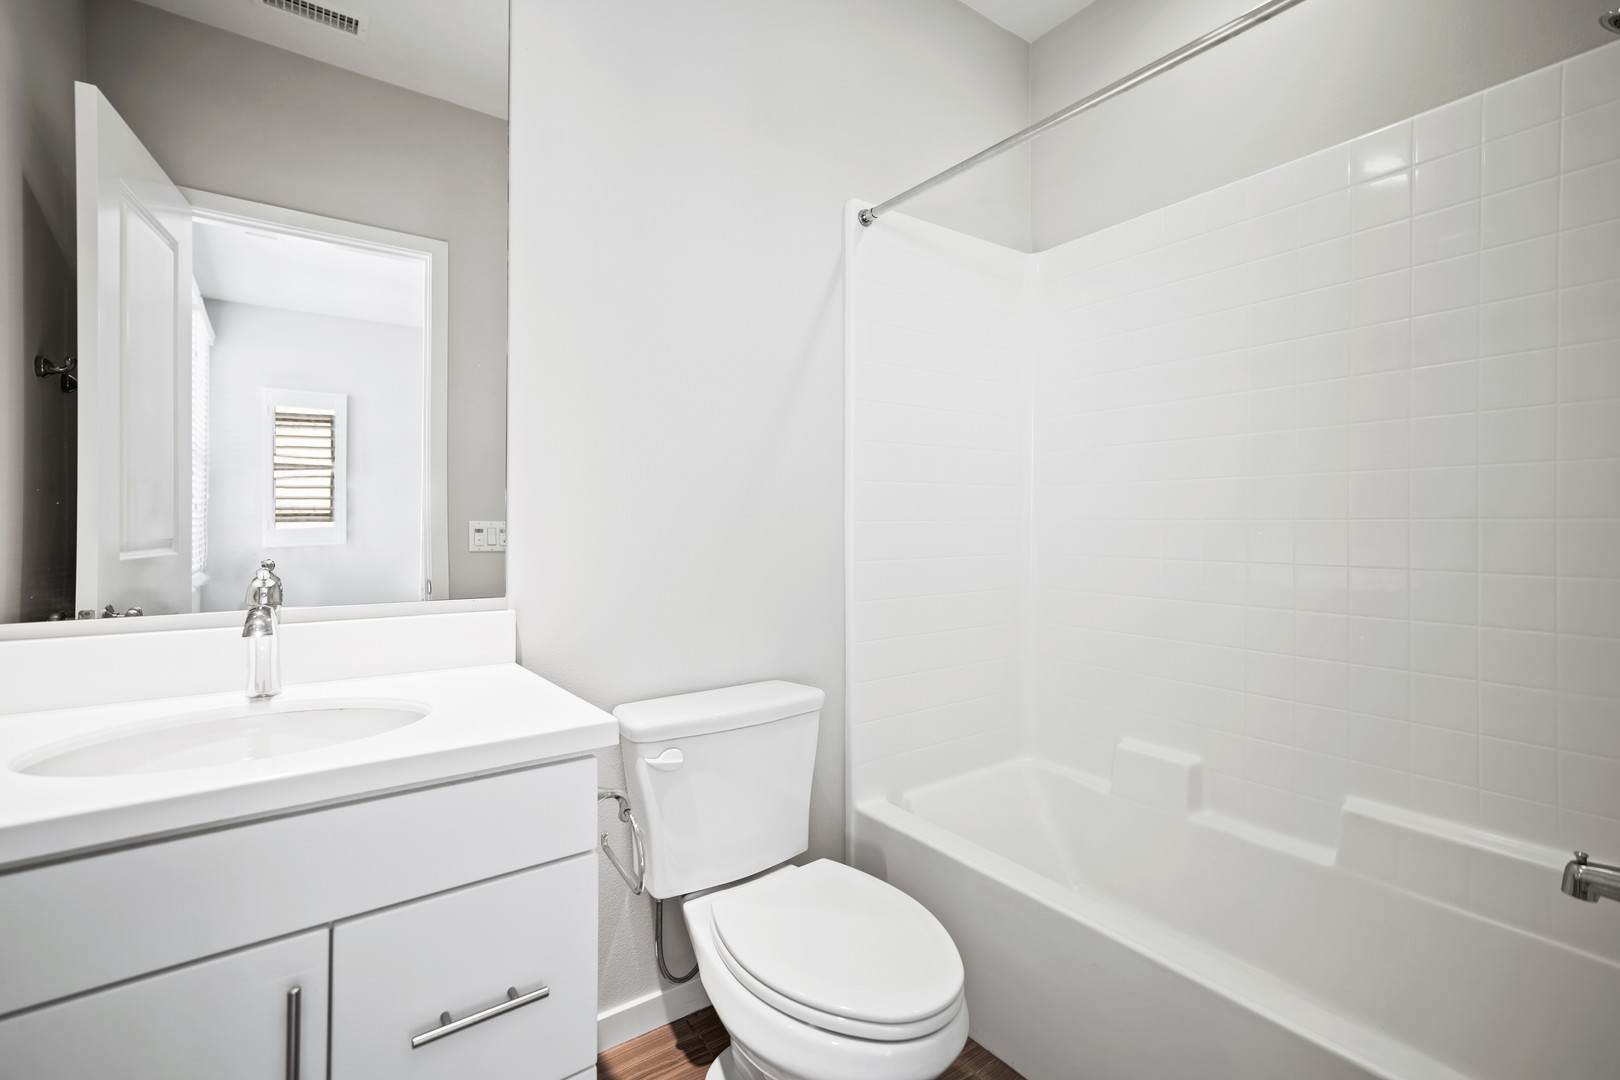 53 Bay Laurel - Irvine Full Bathroom 3.j